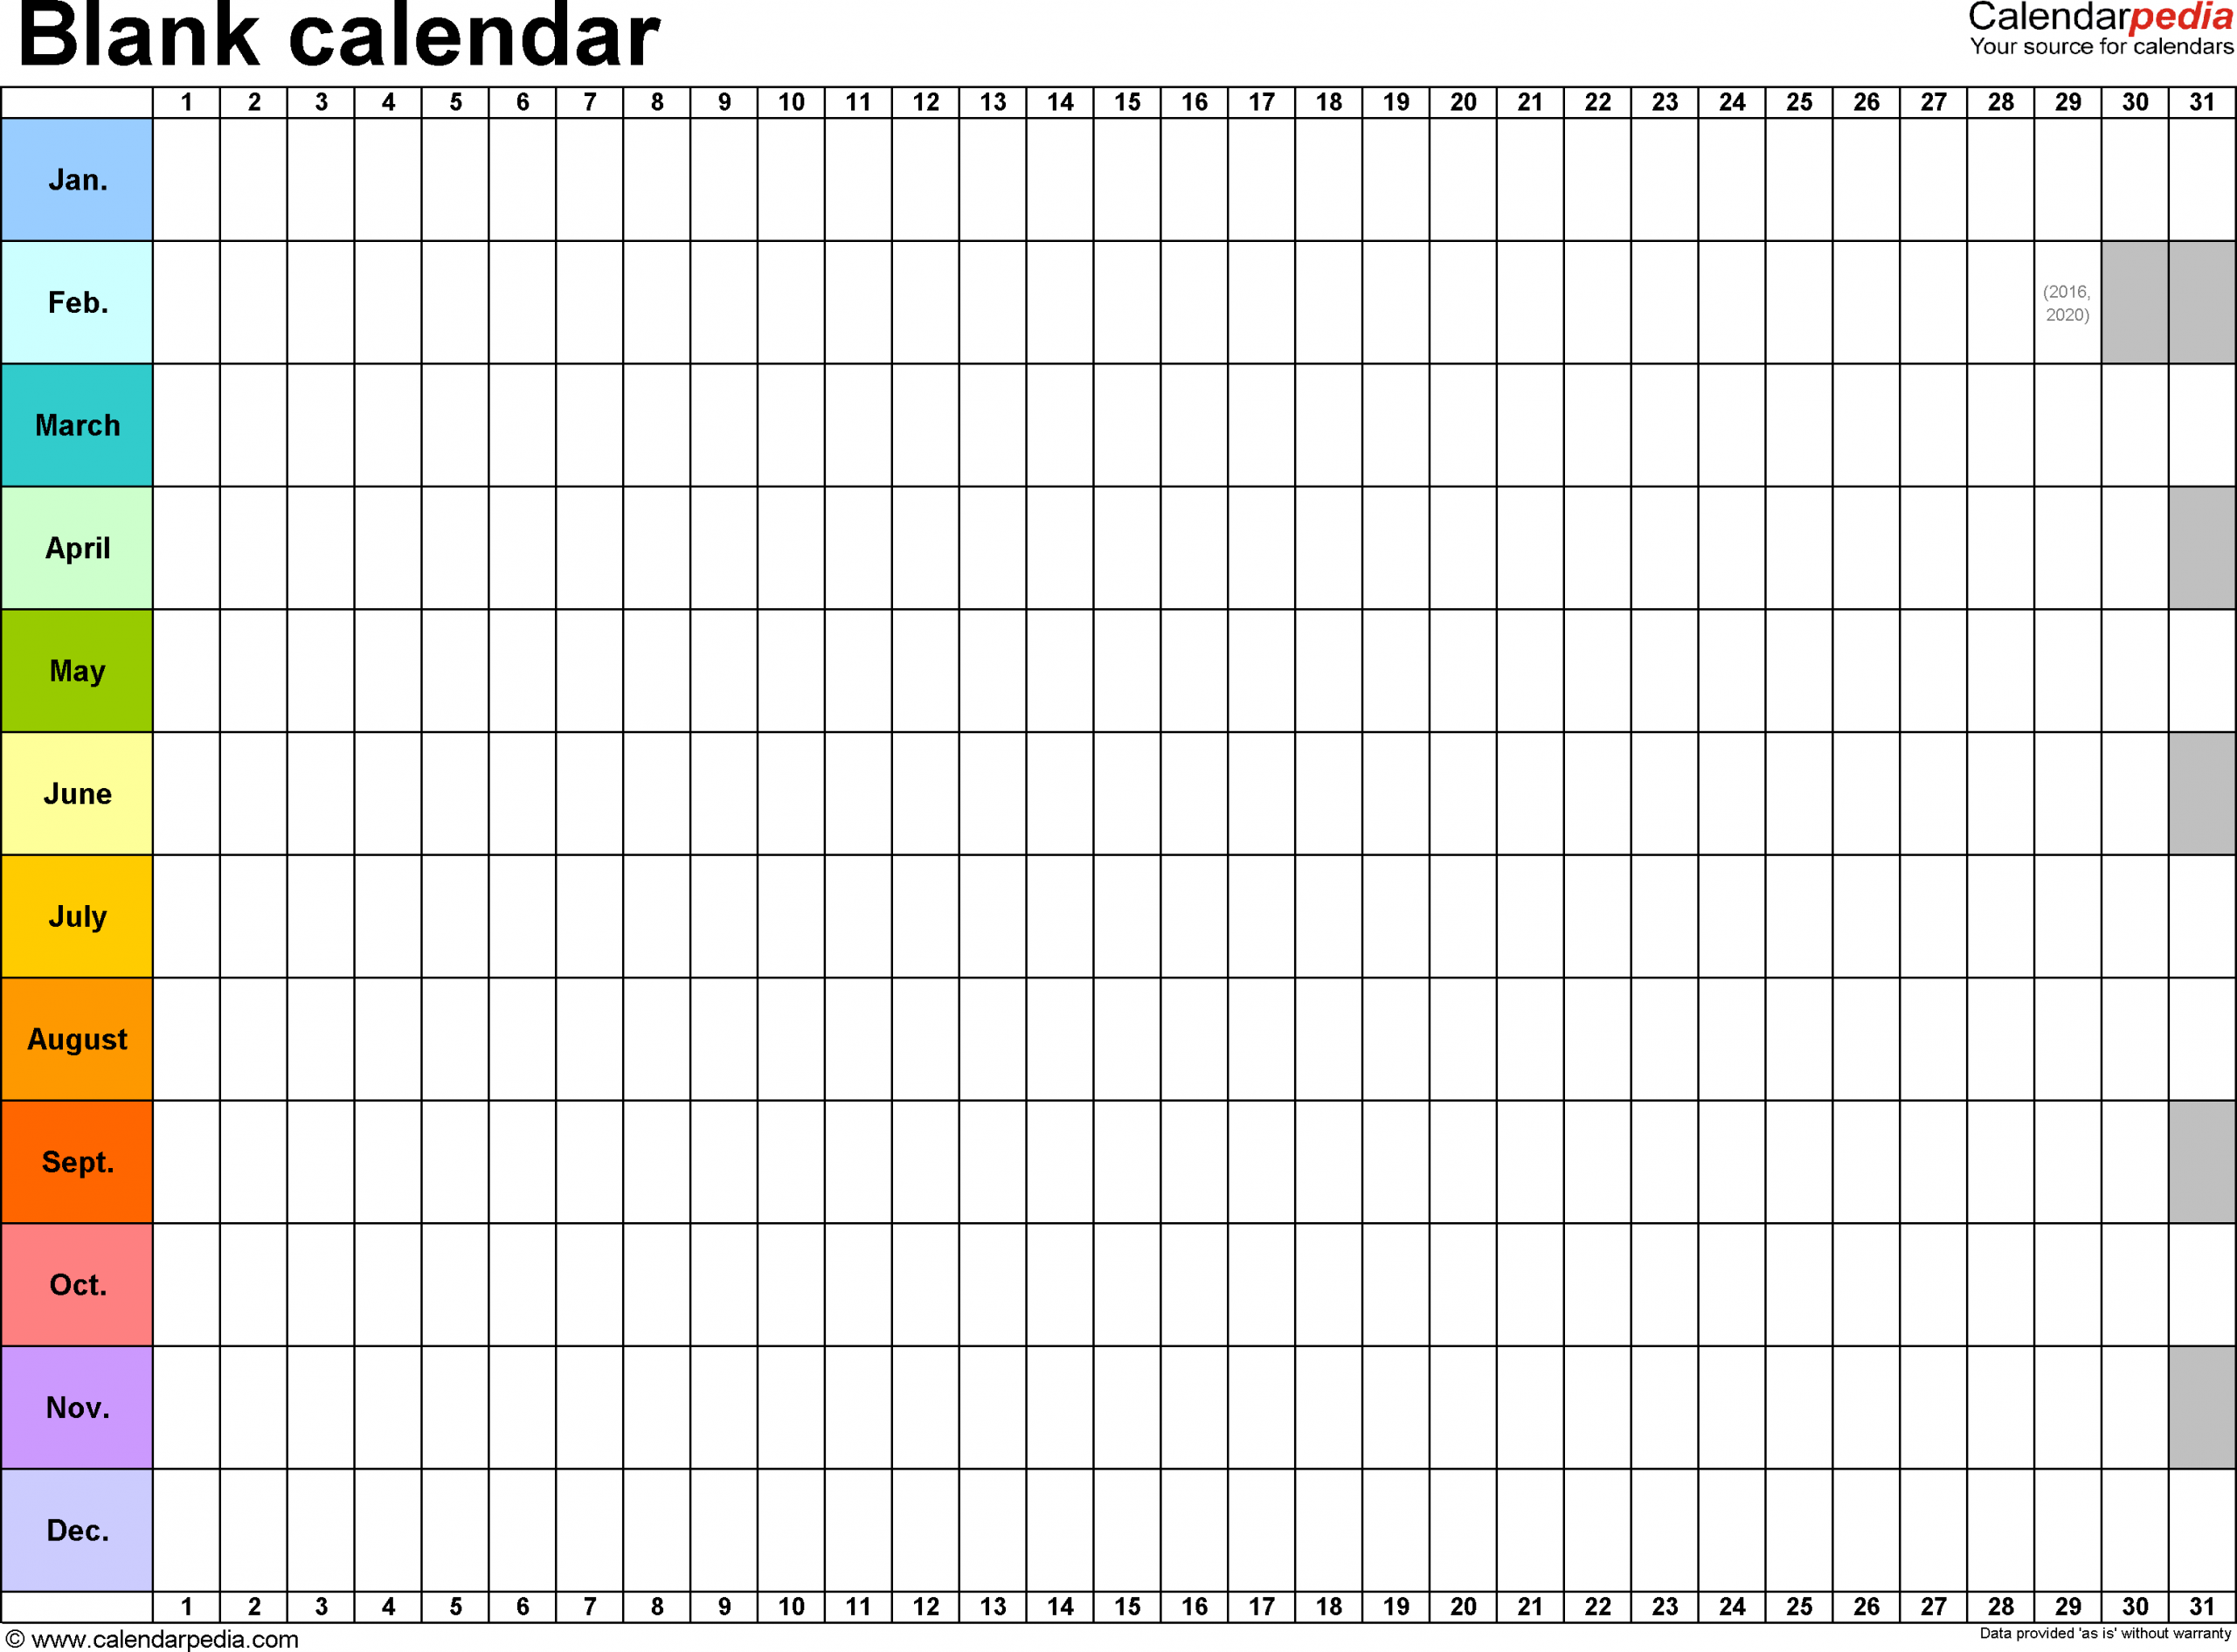 Blank Calendar Print Out | Blank Calendar Template Fill Out A Calender Online And Print Out